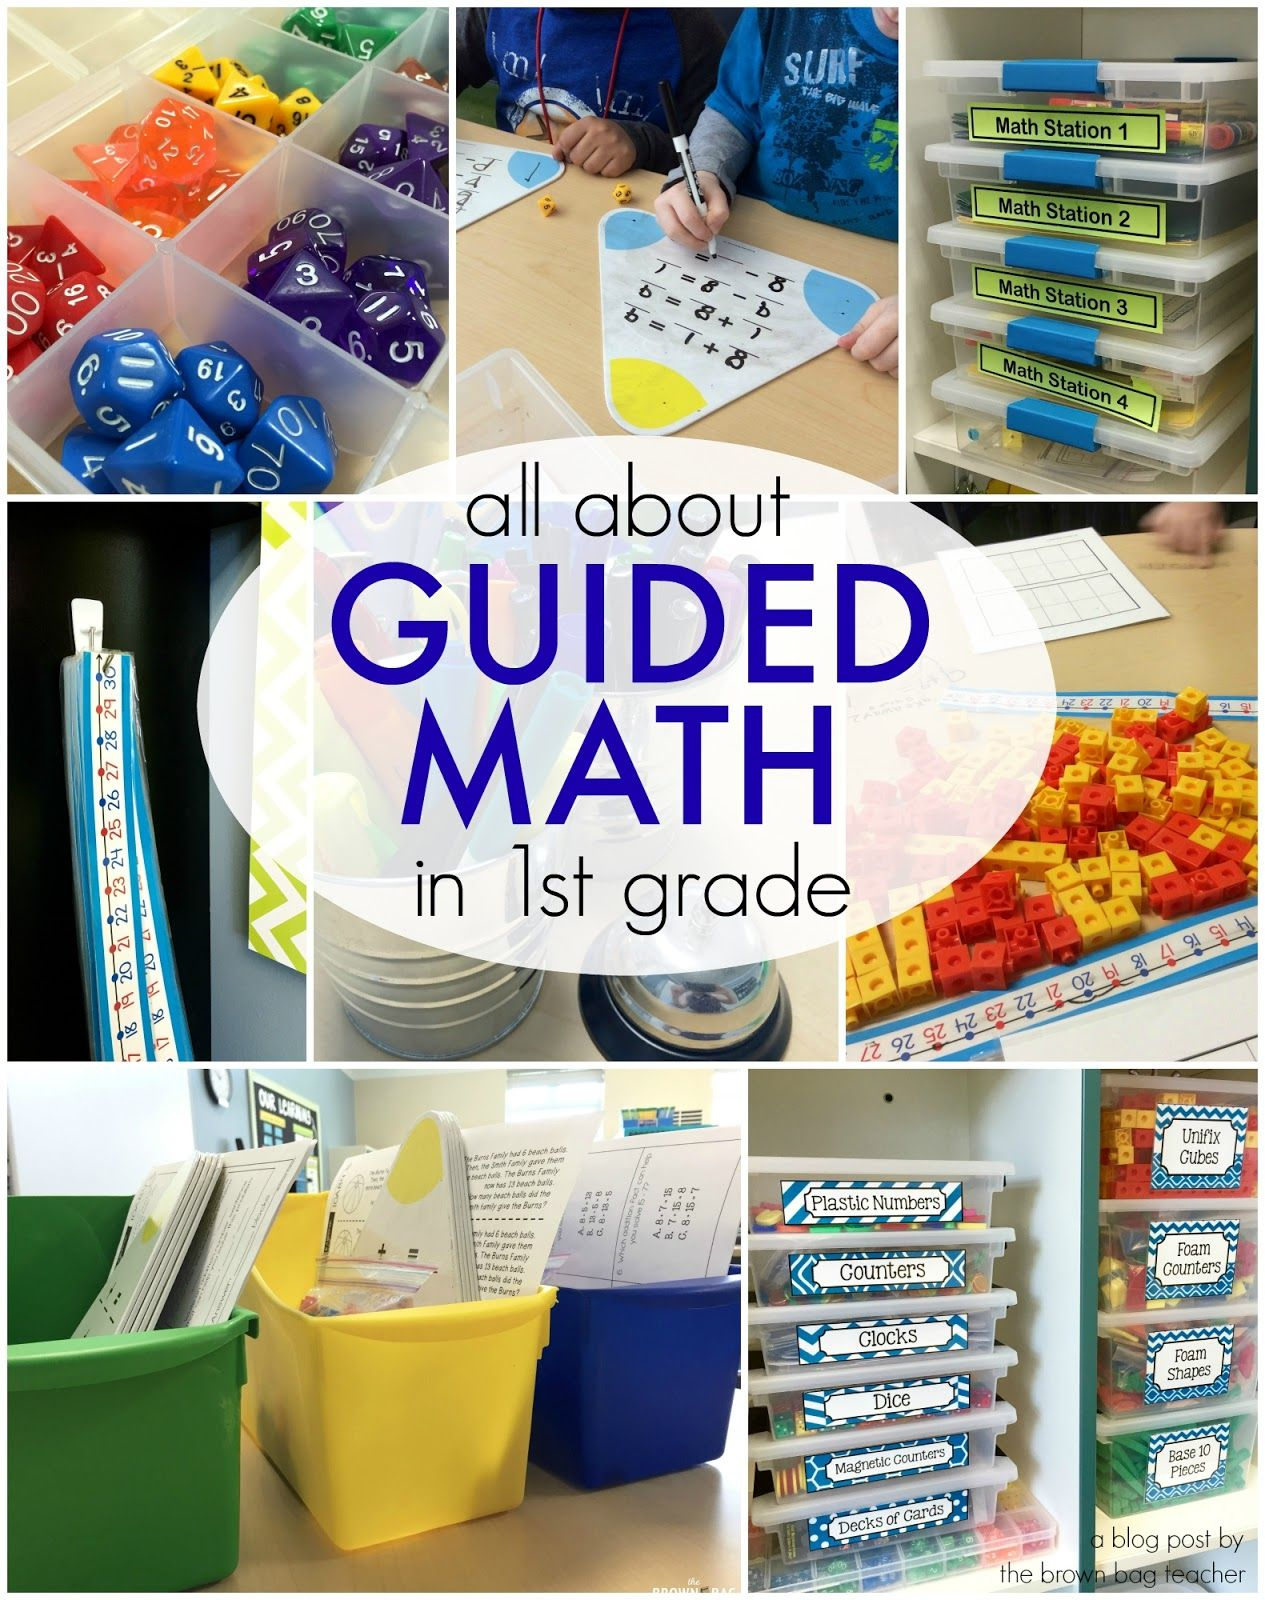 Worksheet Reading Material For 1st Graders guided math in 1st grade the brown bag teacher no worries grade